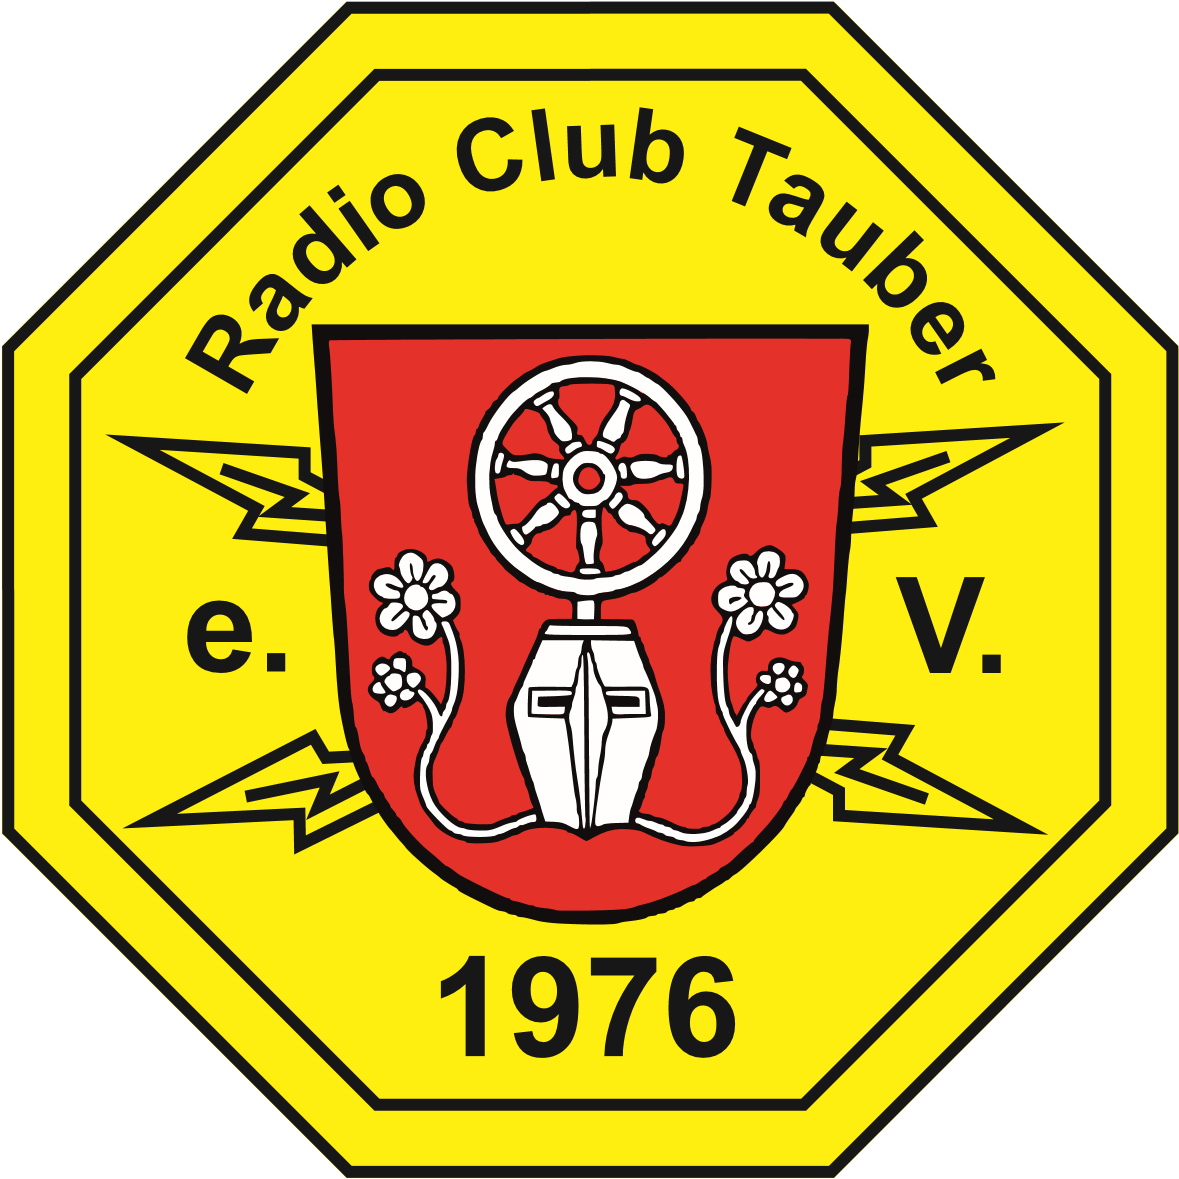 Radio-Club-Tauber e.V.